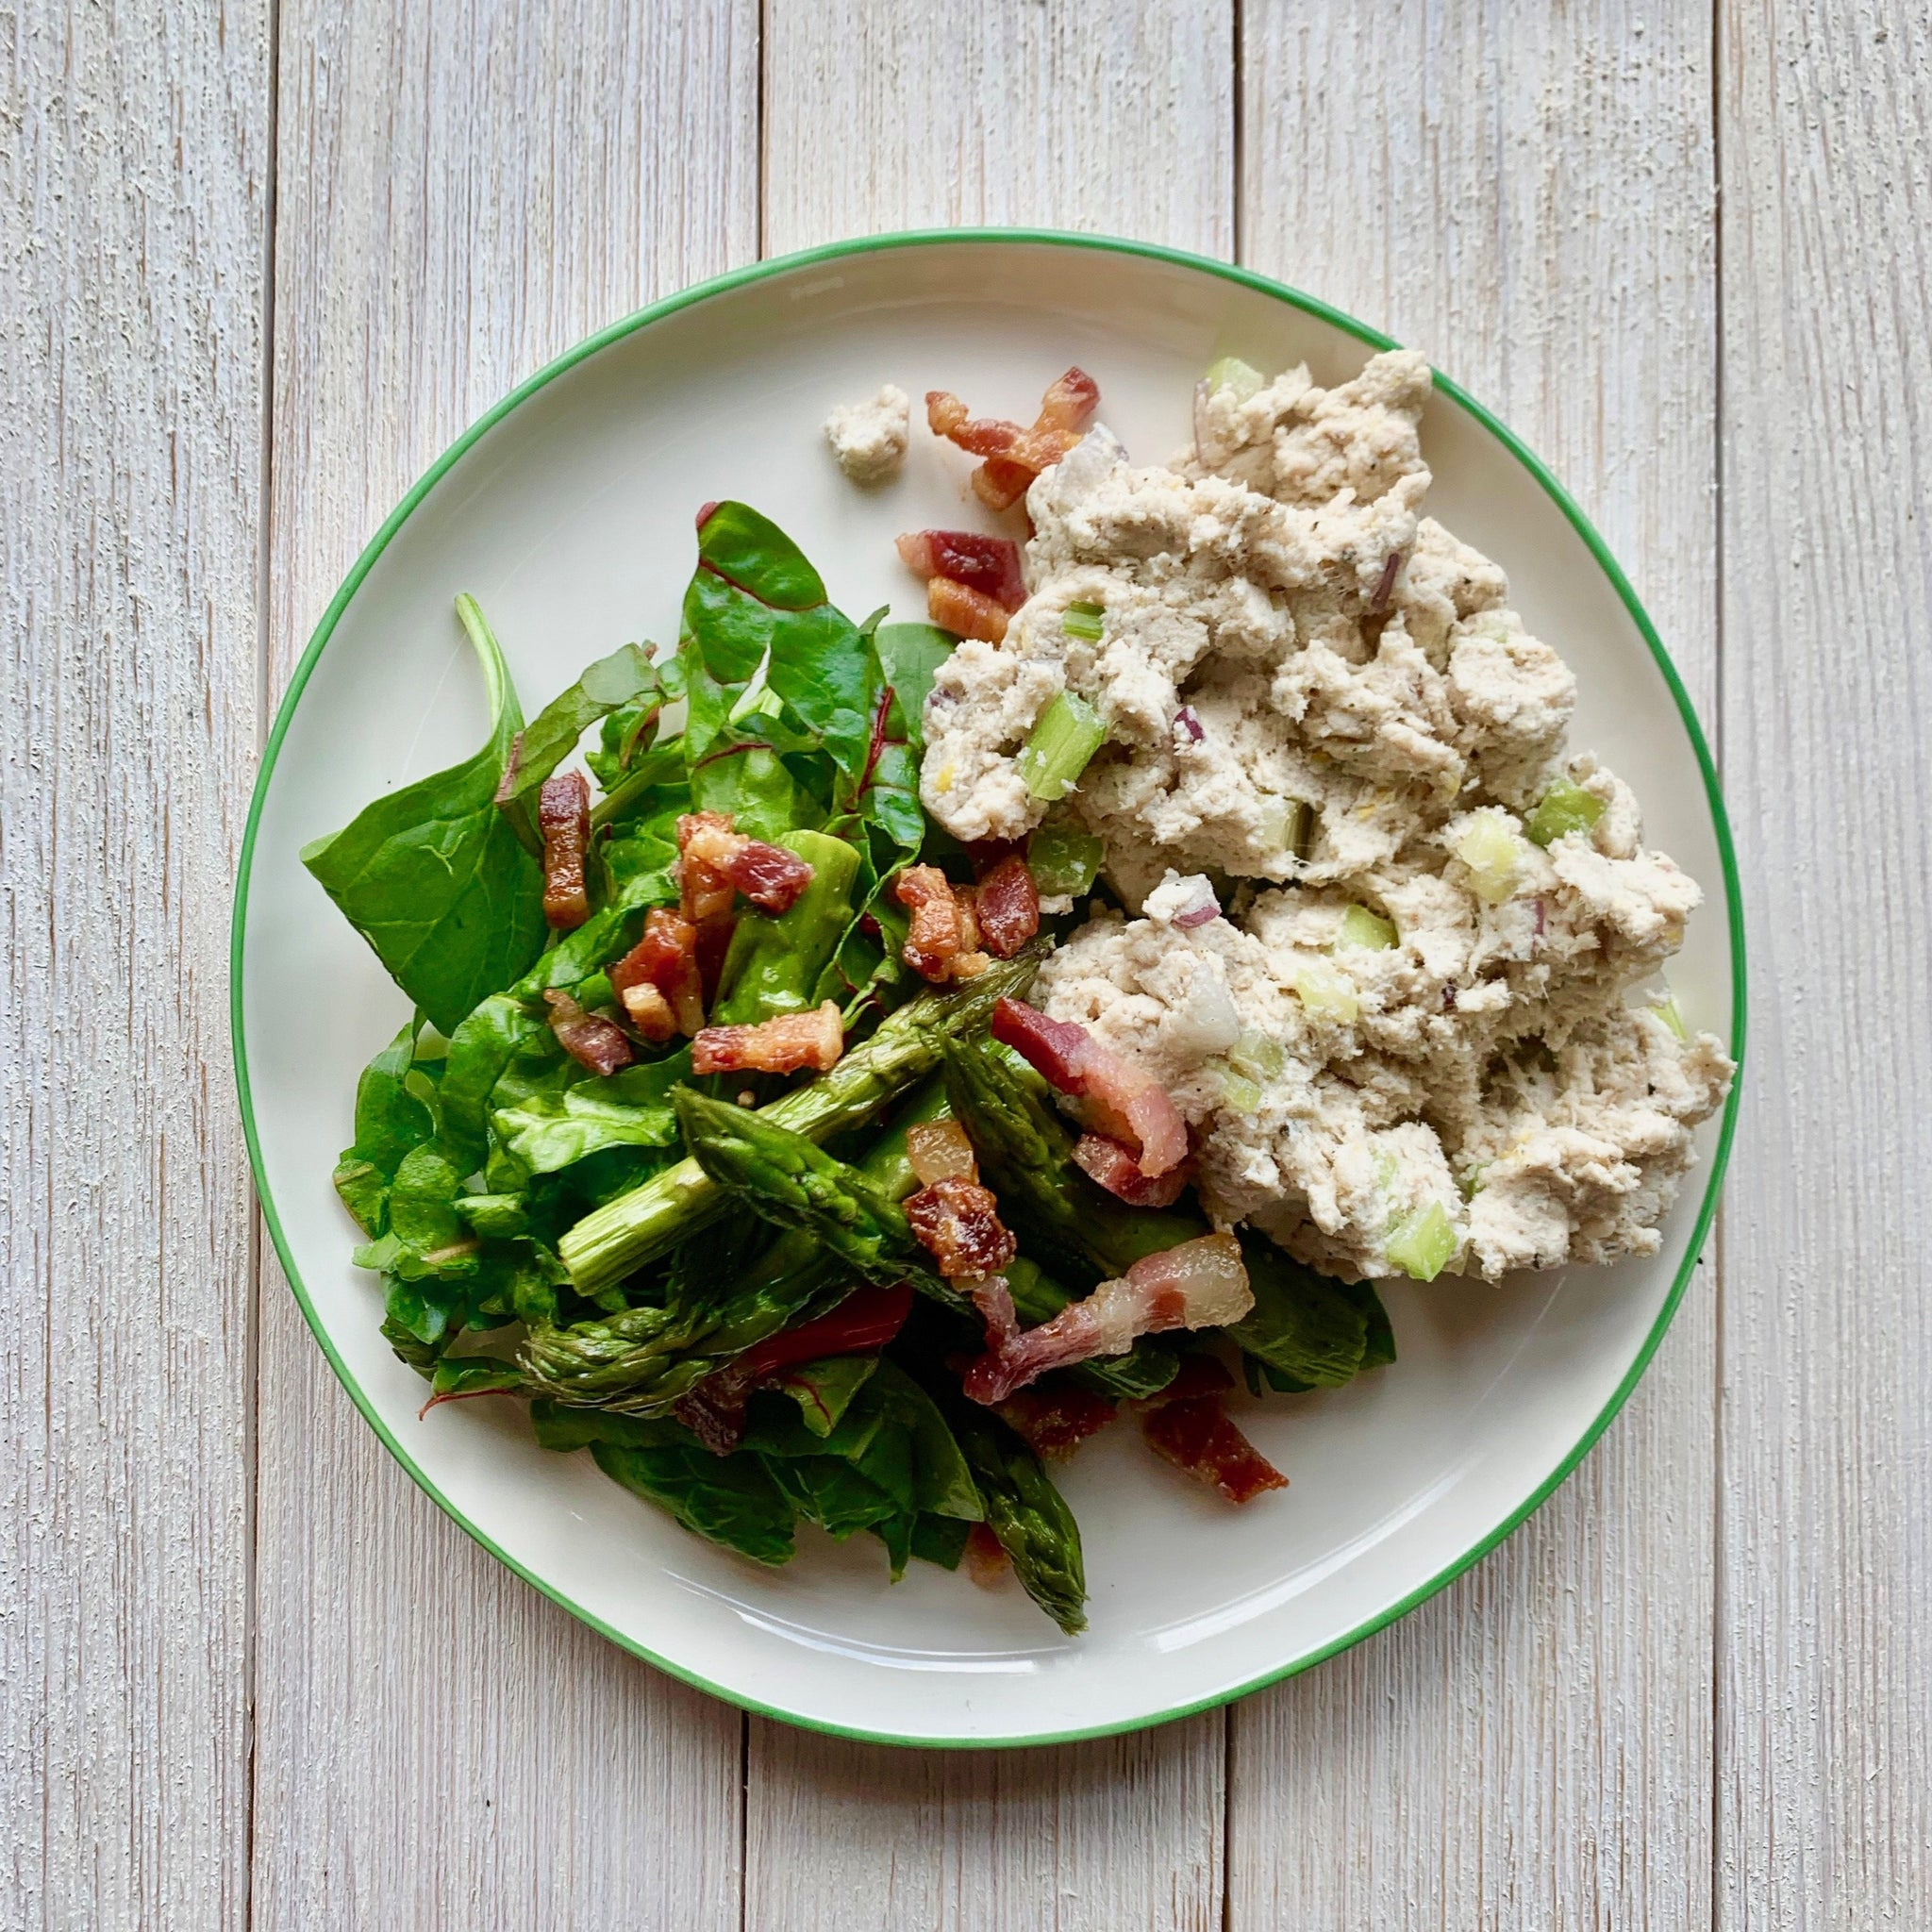 Traditional Chicken Salad with Asparagus Prosciutto Salad